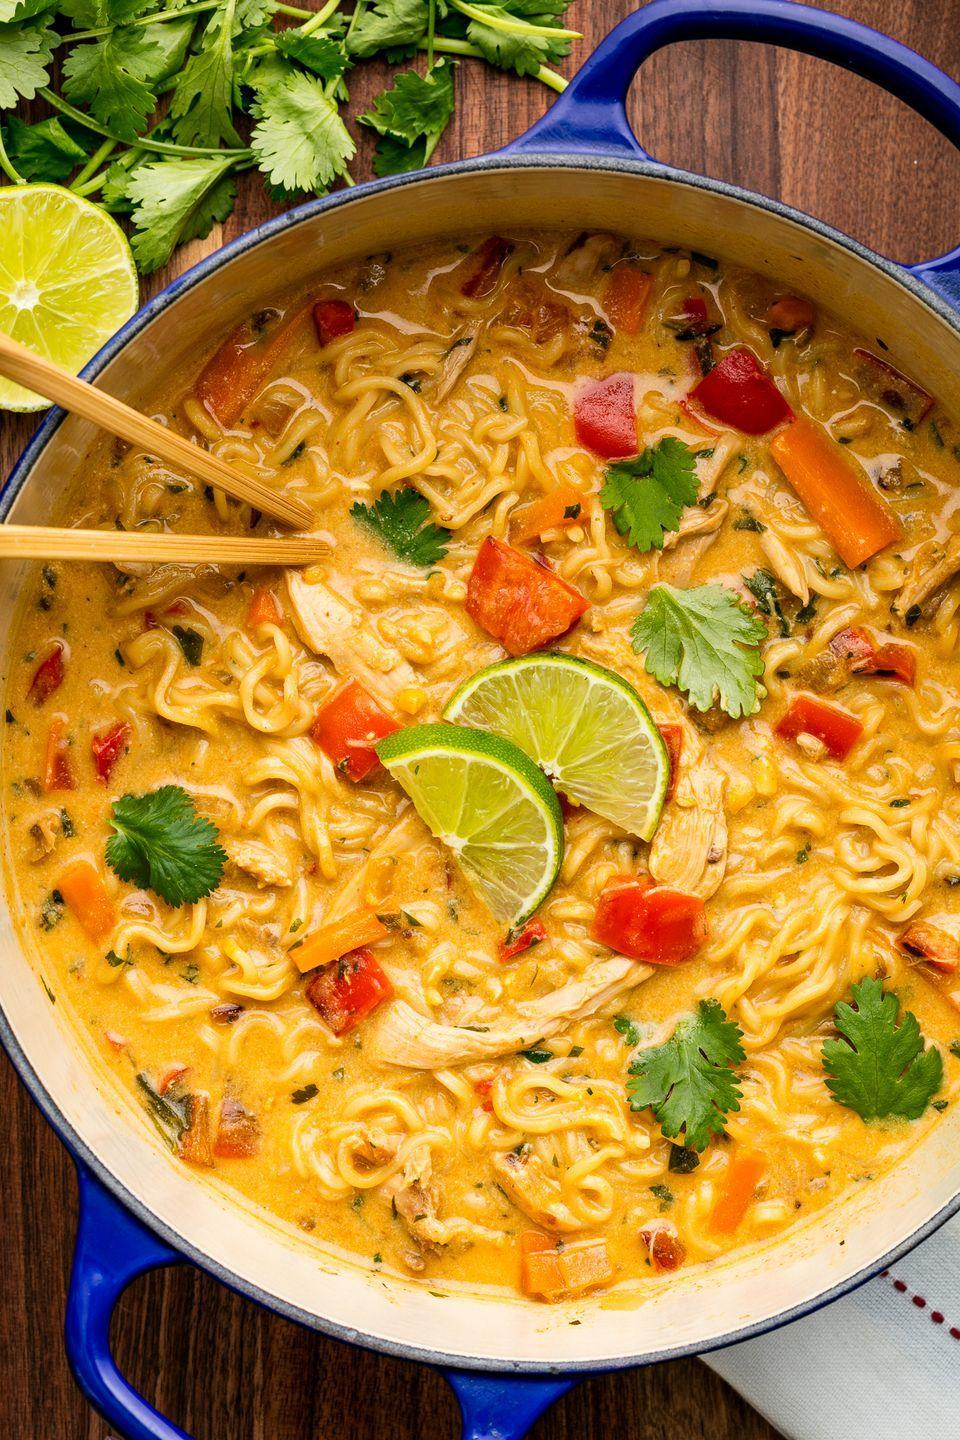 "<p>Two comfort foods rolled into one.</p><p>Get the recipe from <a href=""https://www.delish.com/cooking/recipe-ideas/recipes/a49787/ramen-chicken-noodle-recipe/"" rel=""nofollow noopener"" target=""_blank"" data-ylk=""slk:Delish"" class=""link rapid-noclick-resp"">Delish</a>.</p>"